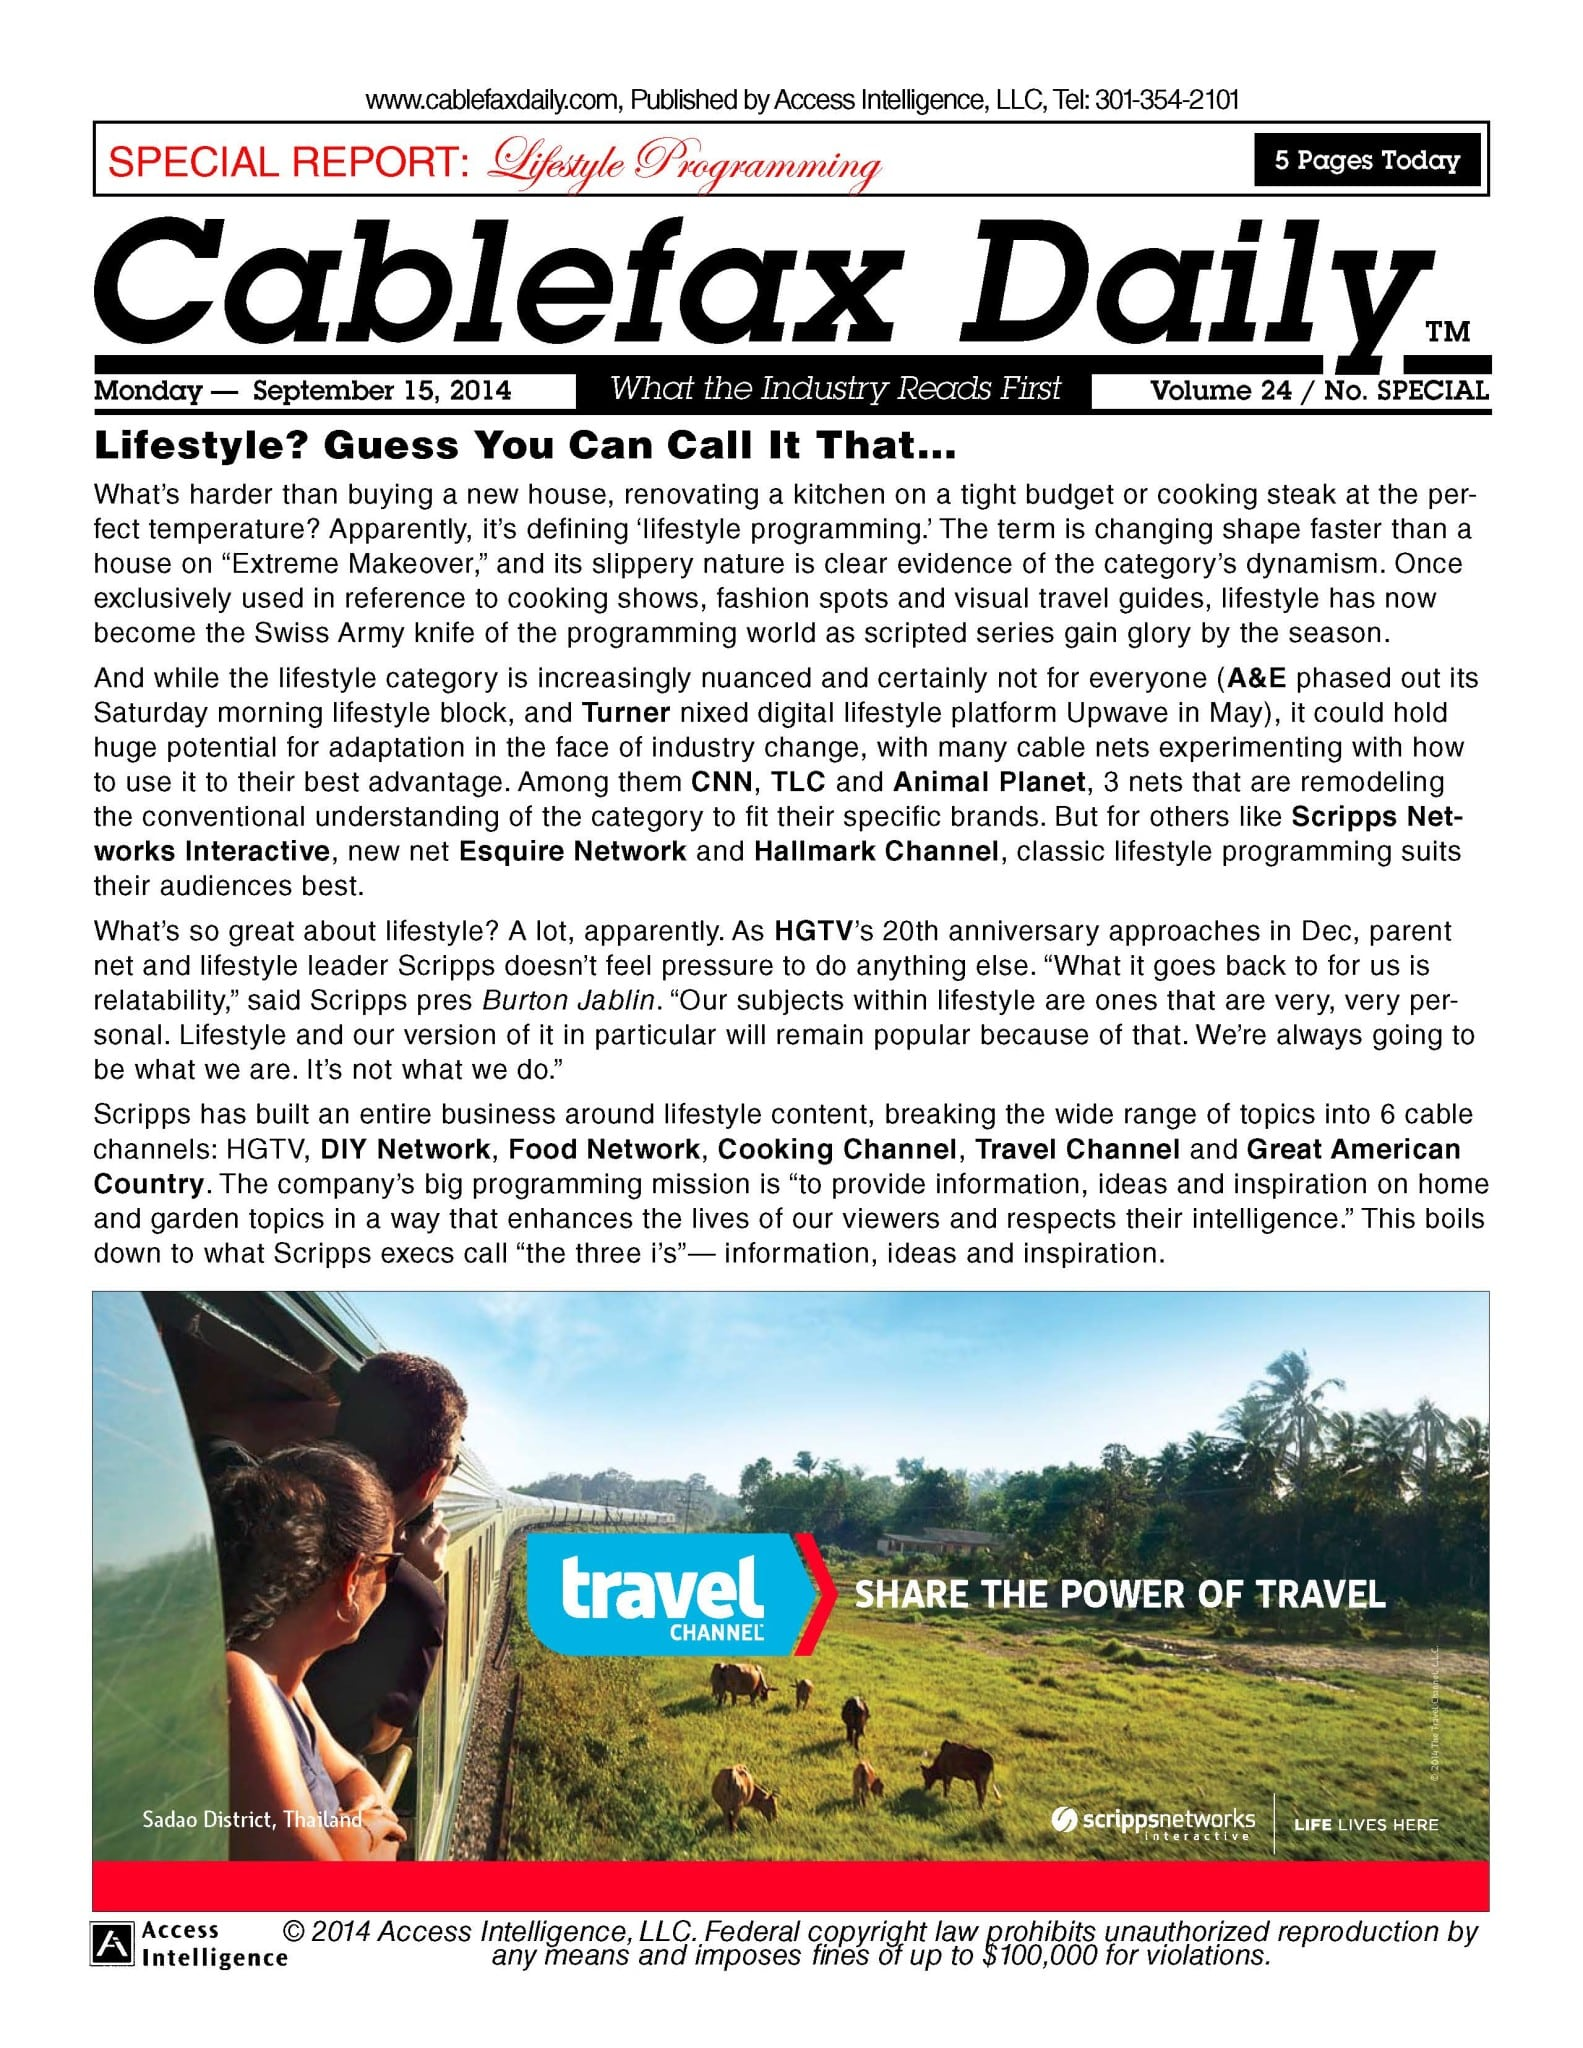 cfax091514_Midday_Lifestylecover2